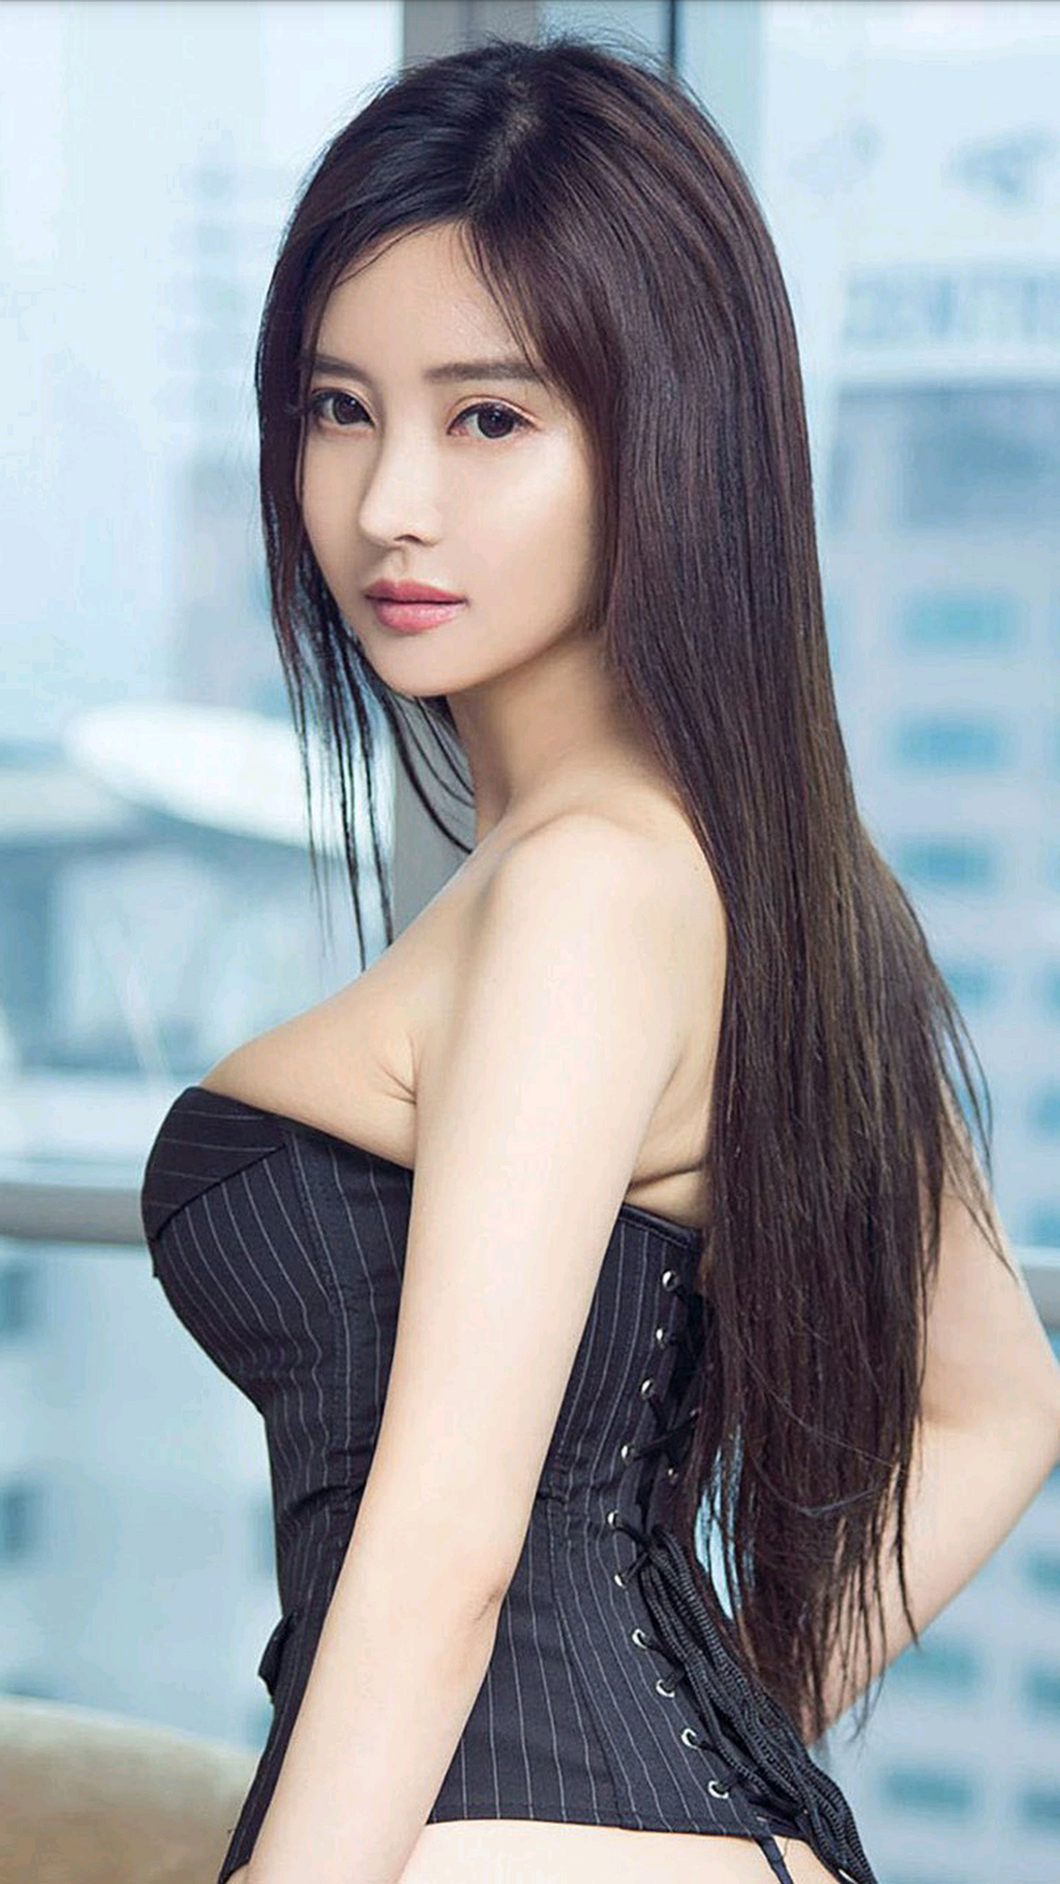 Hot female asian models